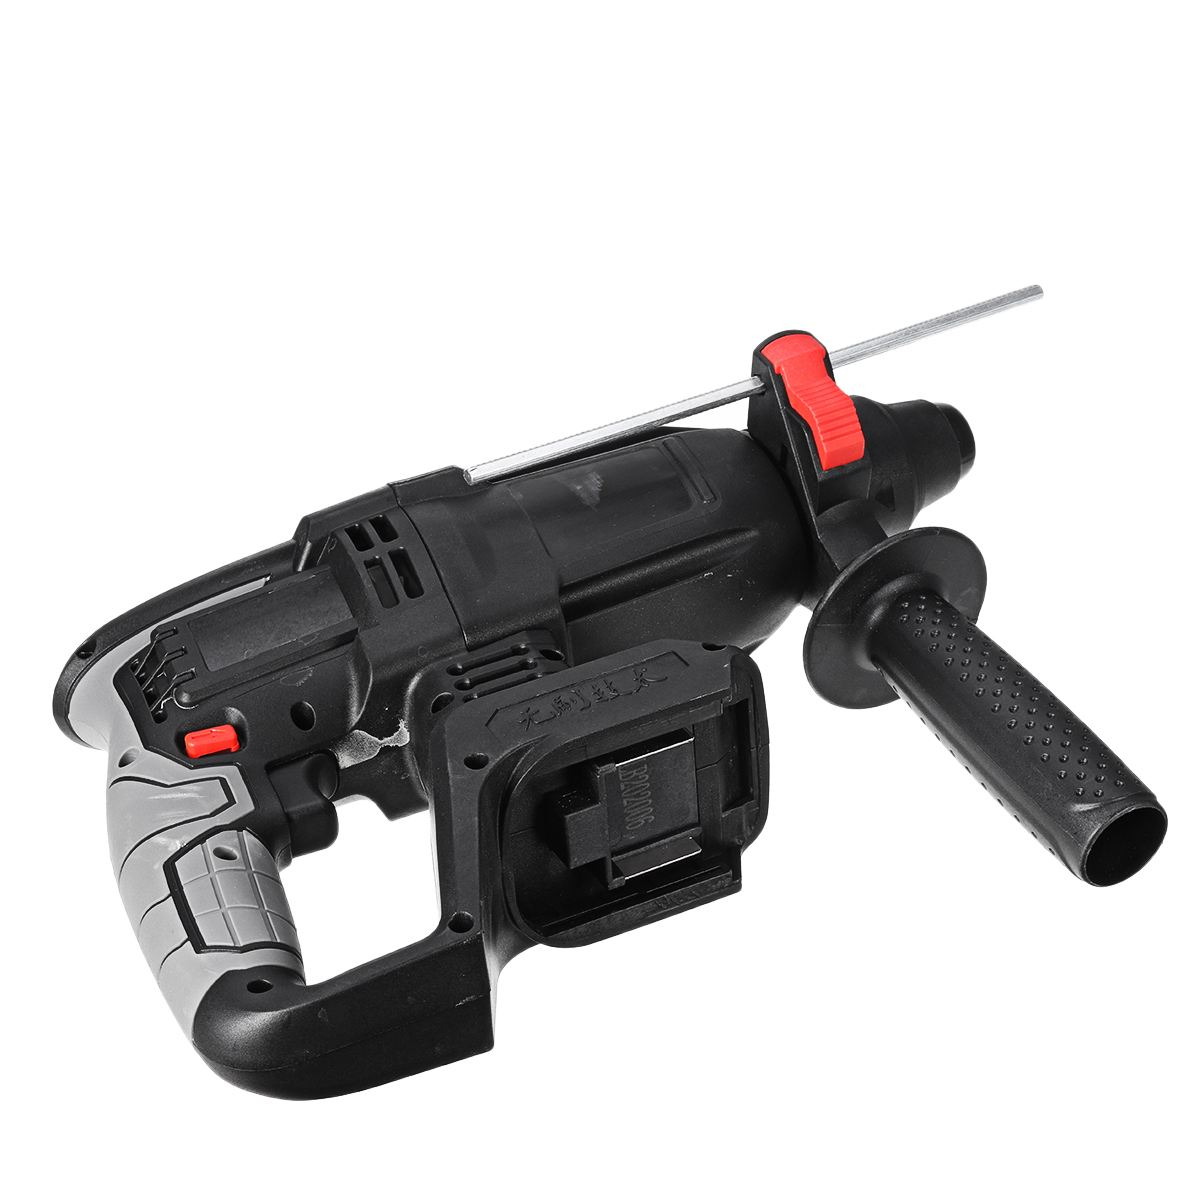 Tools : Brushless Electric Rotary Hammer Rechargeable Multifunction Hammer Impact Power Drill Tool for 198Vf Makita Battery